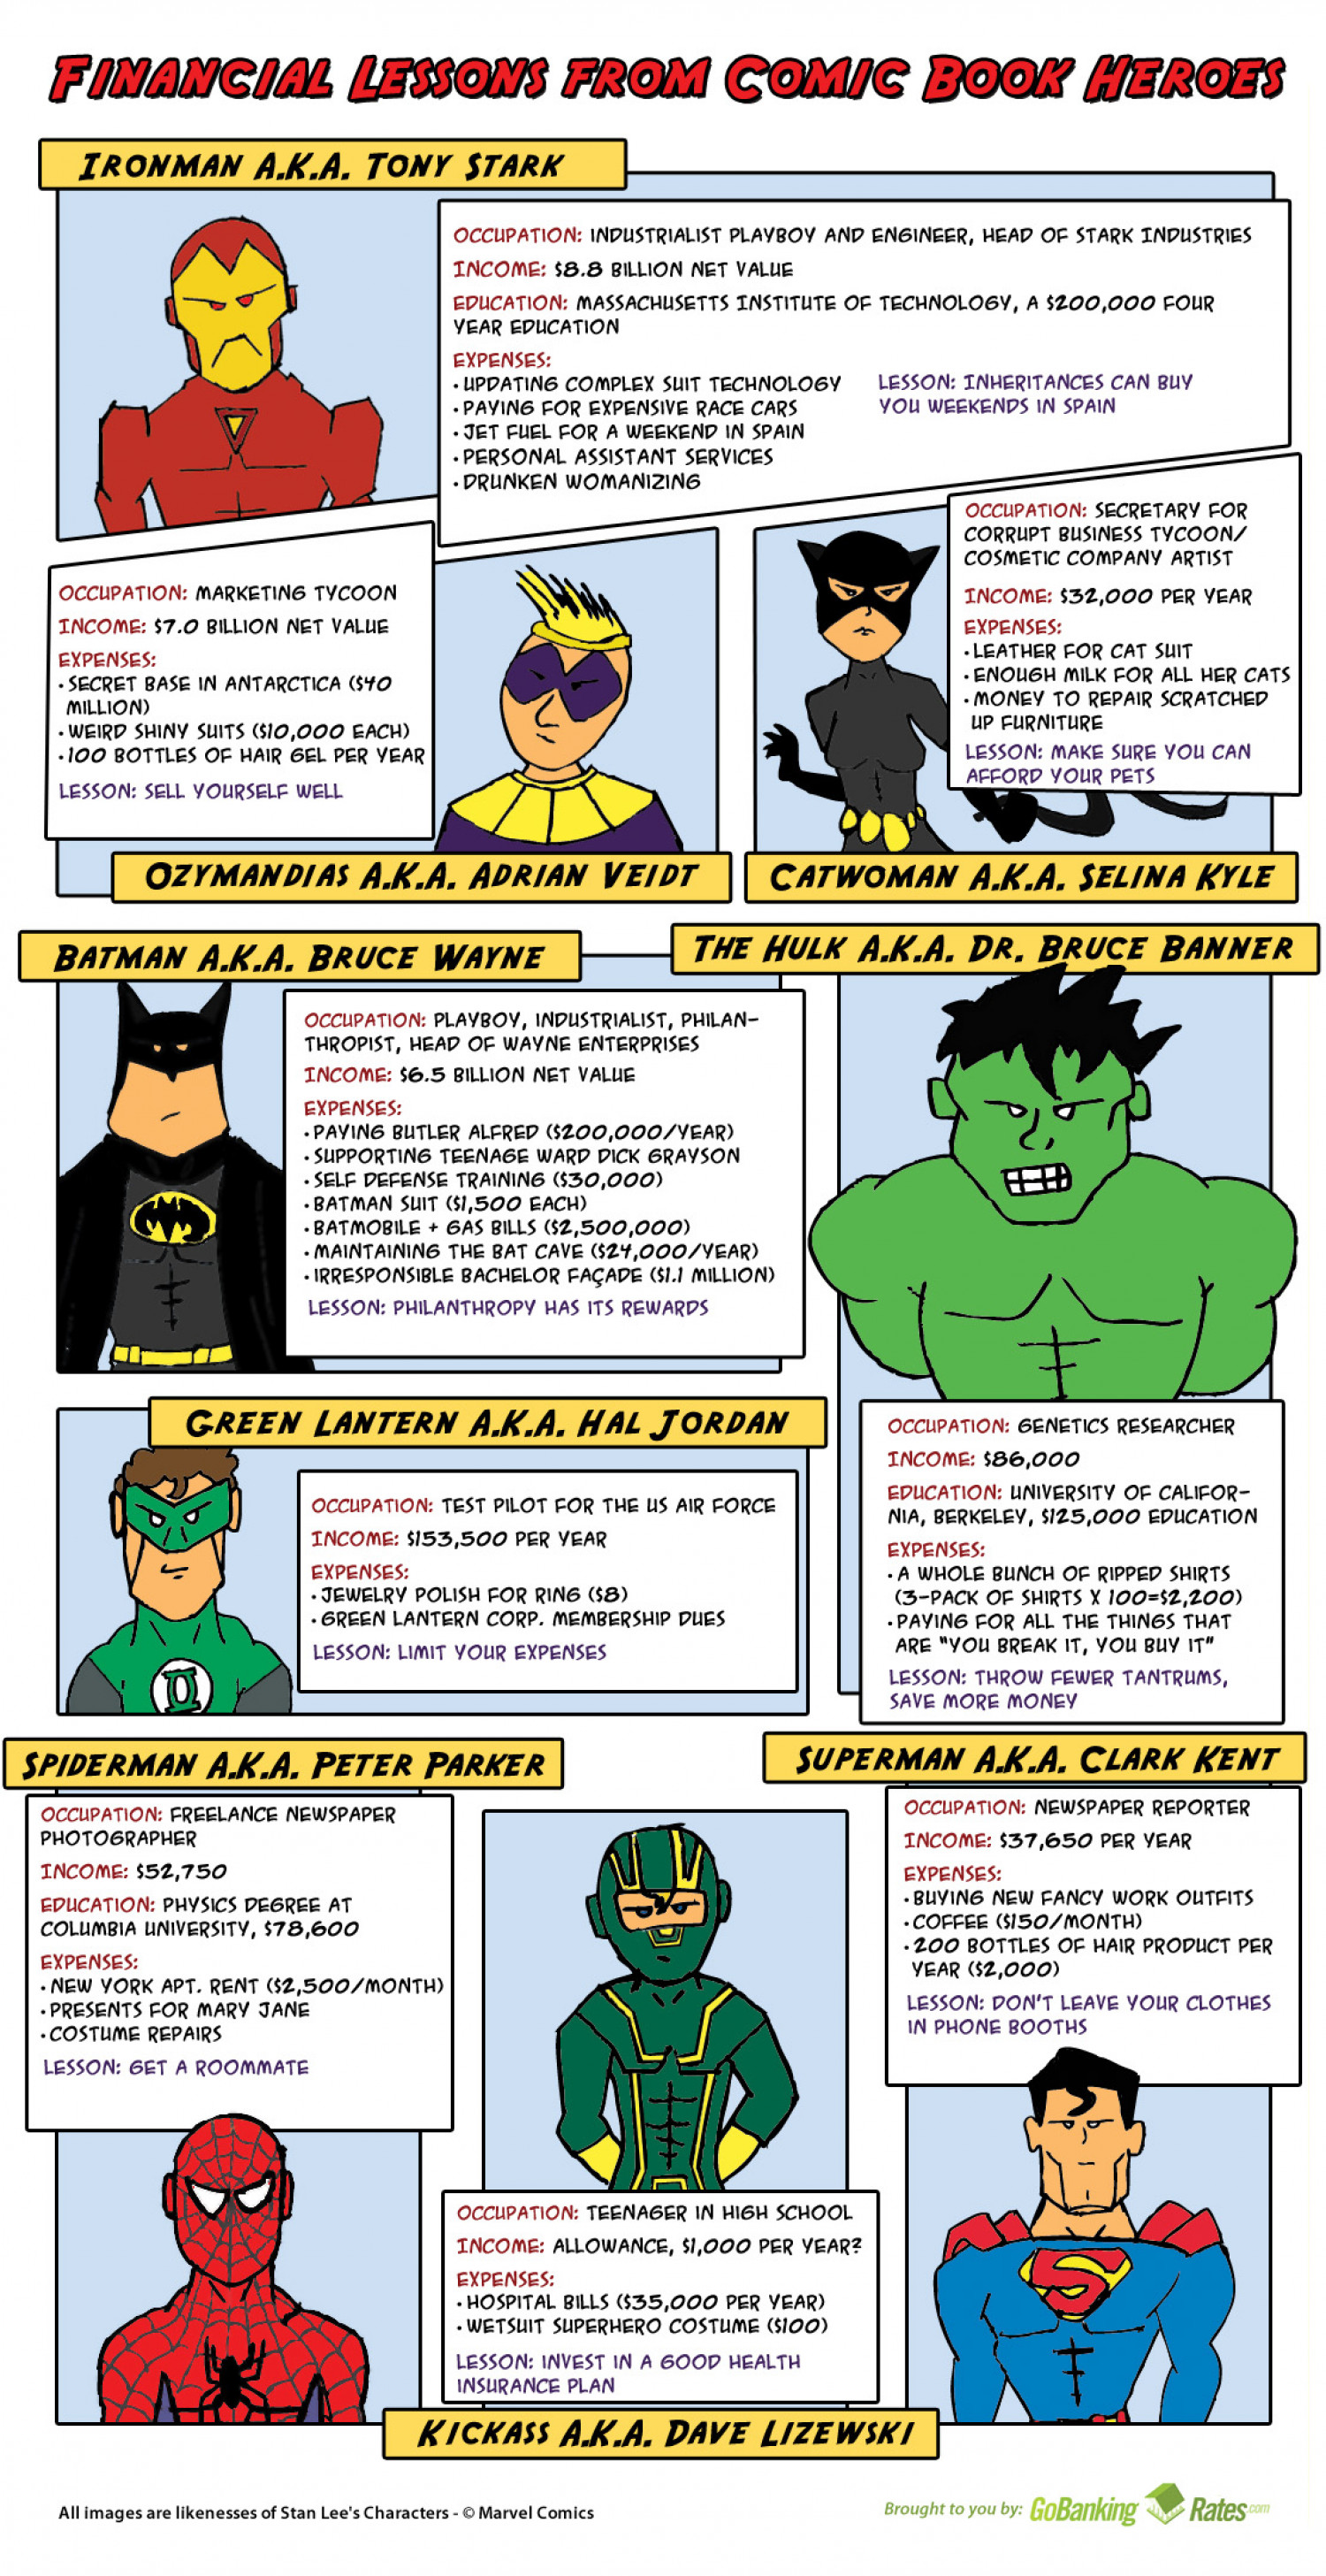 Financial Lessons From Comic Book Heroes